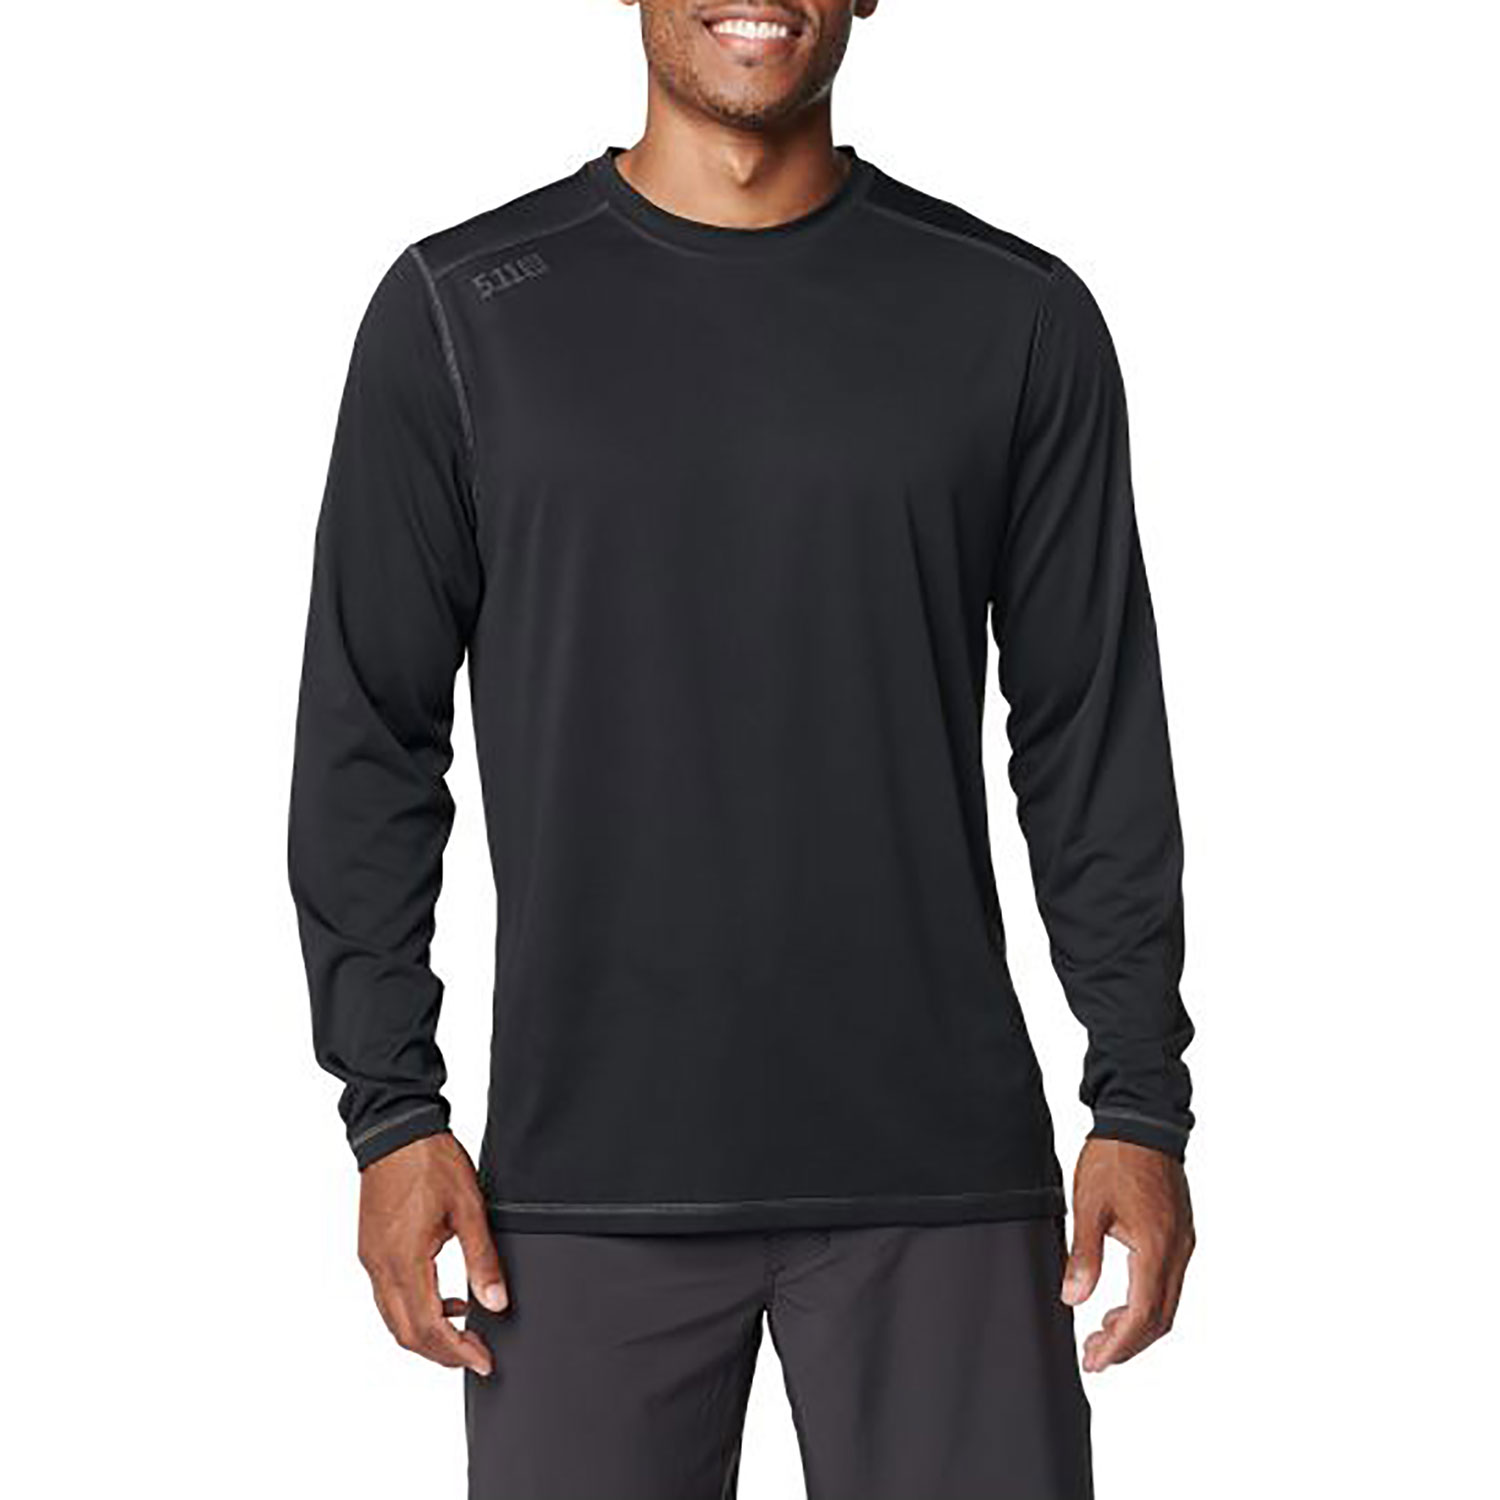 5.11 Range Ready Long Sleeve Shirt